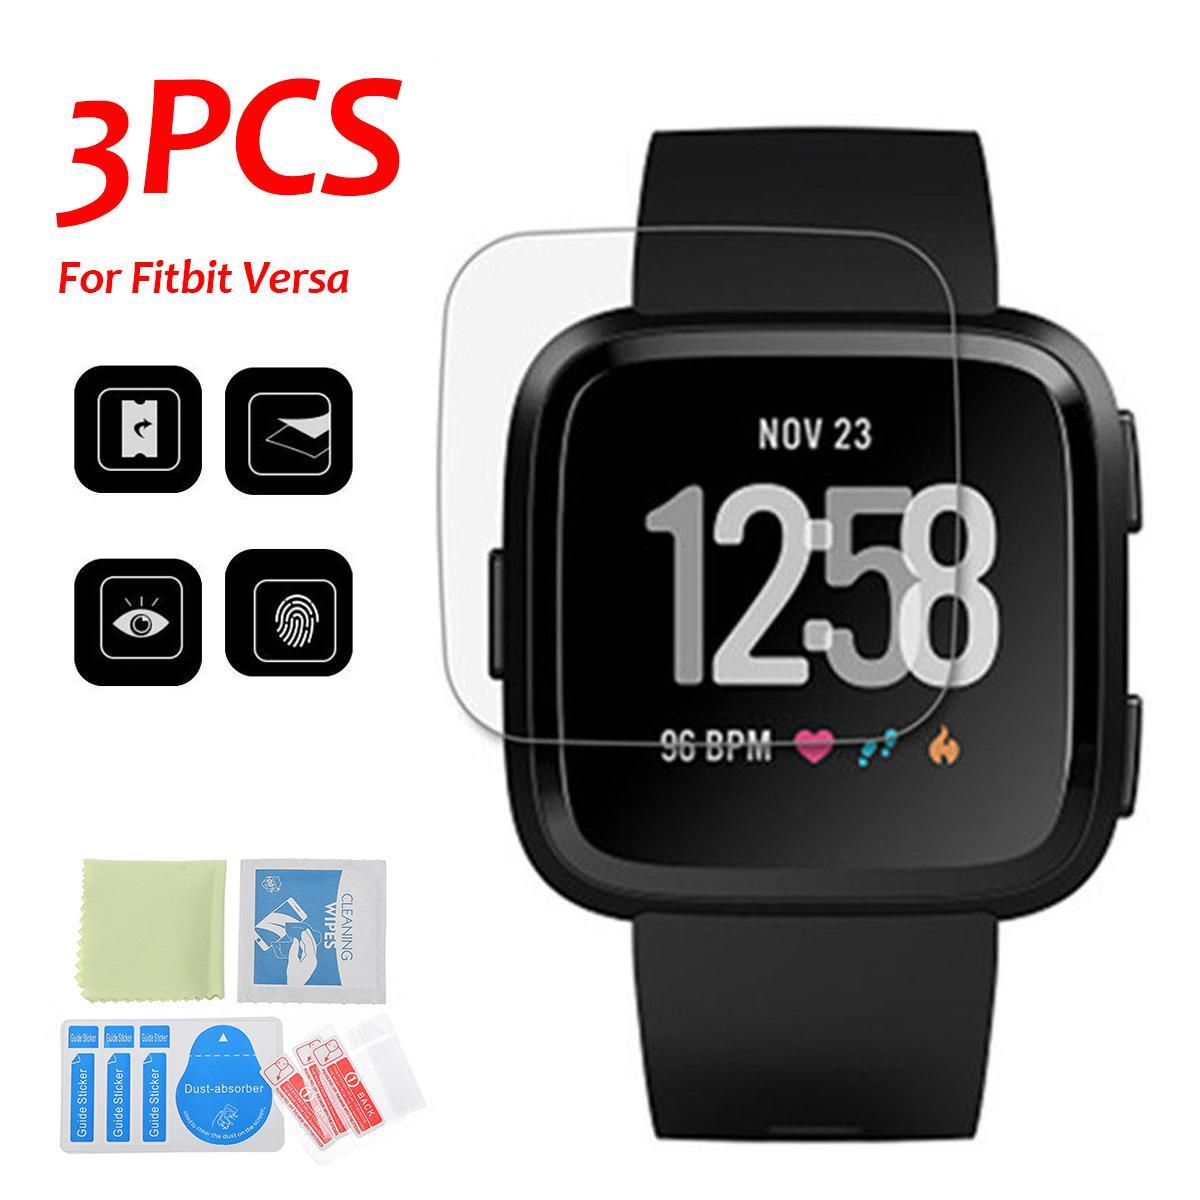 Buy Esolo Wearable Technology at Best Prices Online in Pakistan